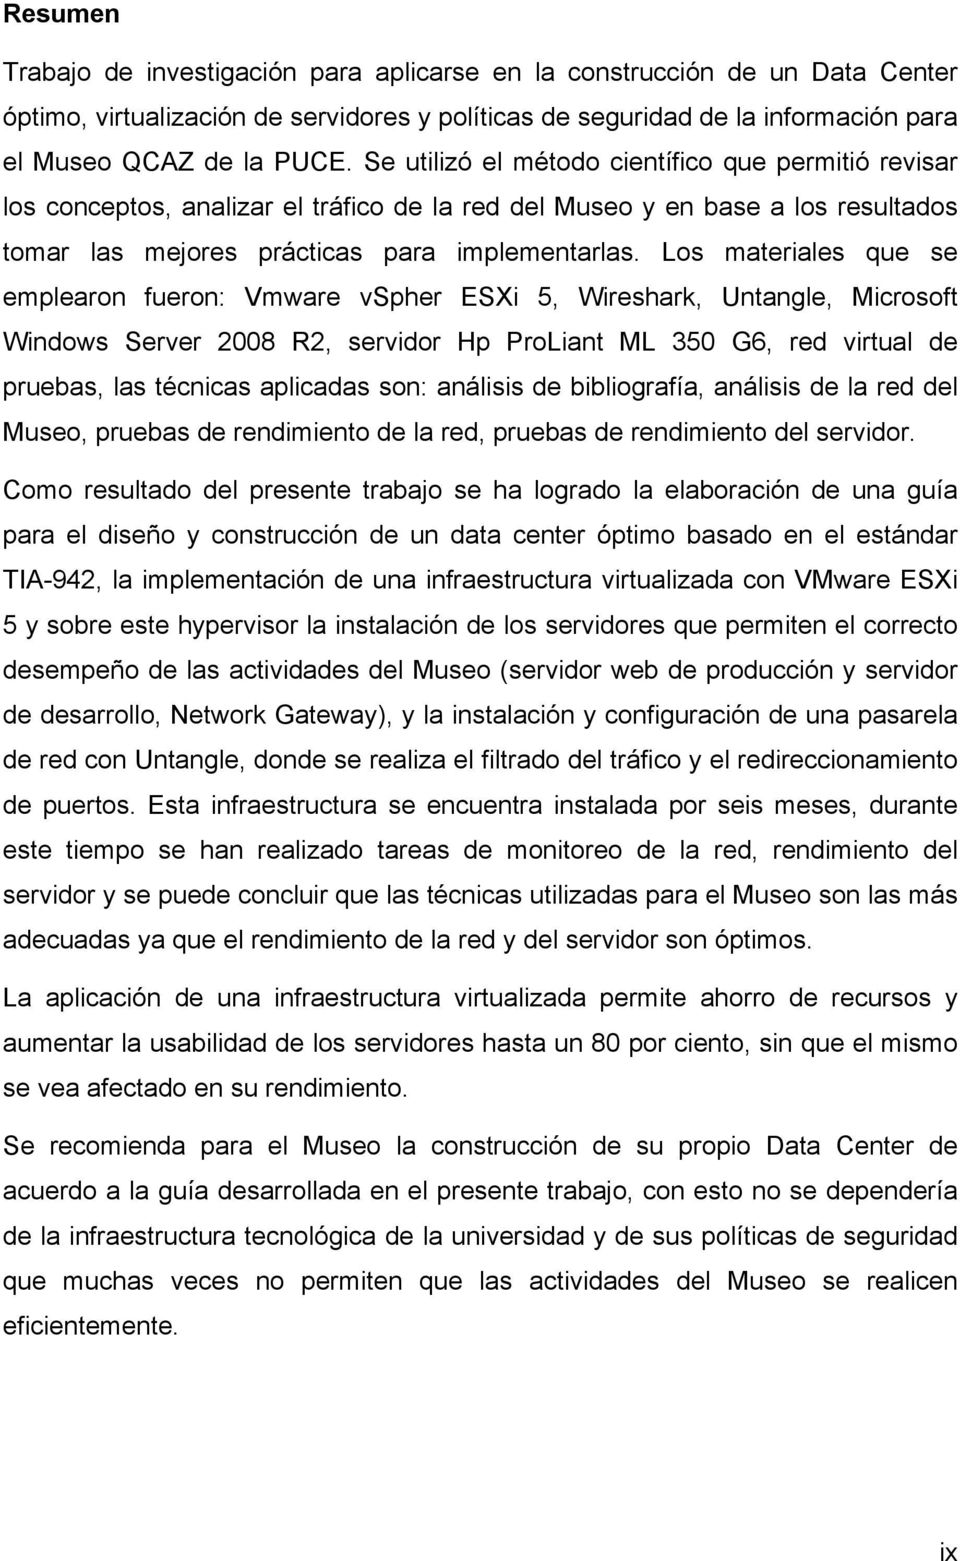 Los materiales que se emplearon fueron: Vmware vspher ESXi 5, Wireshark, Untangle, Microsoft Windows Server 2008 R2, servidor Hp ProLiant ML 350 G6, red virtual de pruebas, las técnicas aplicadas